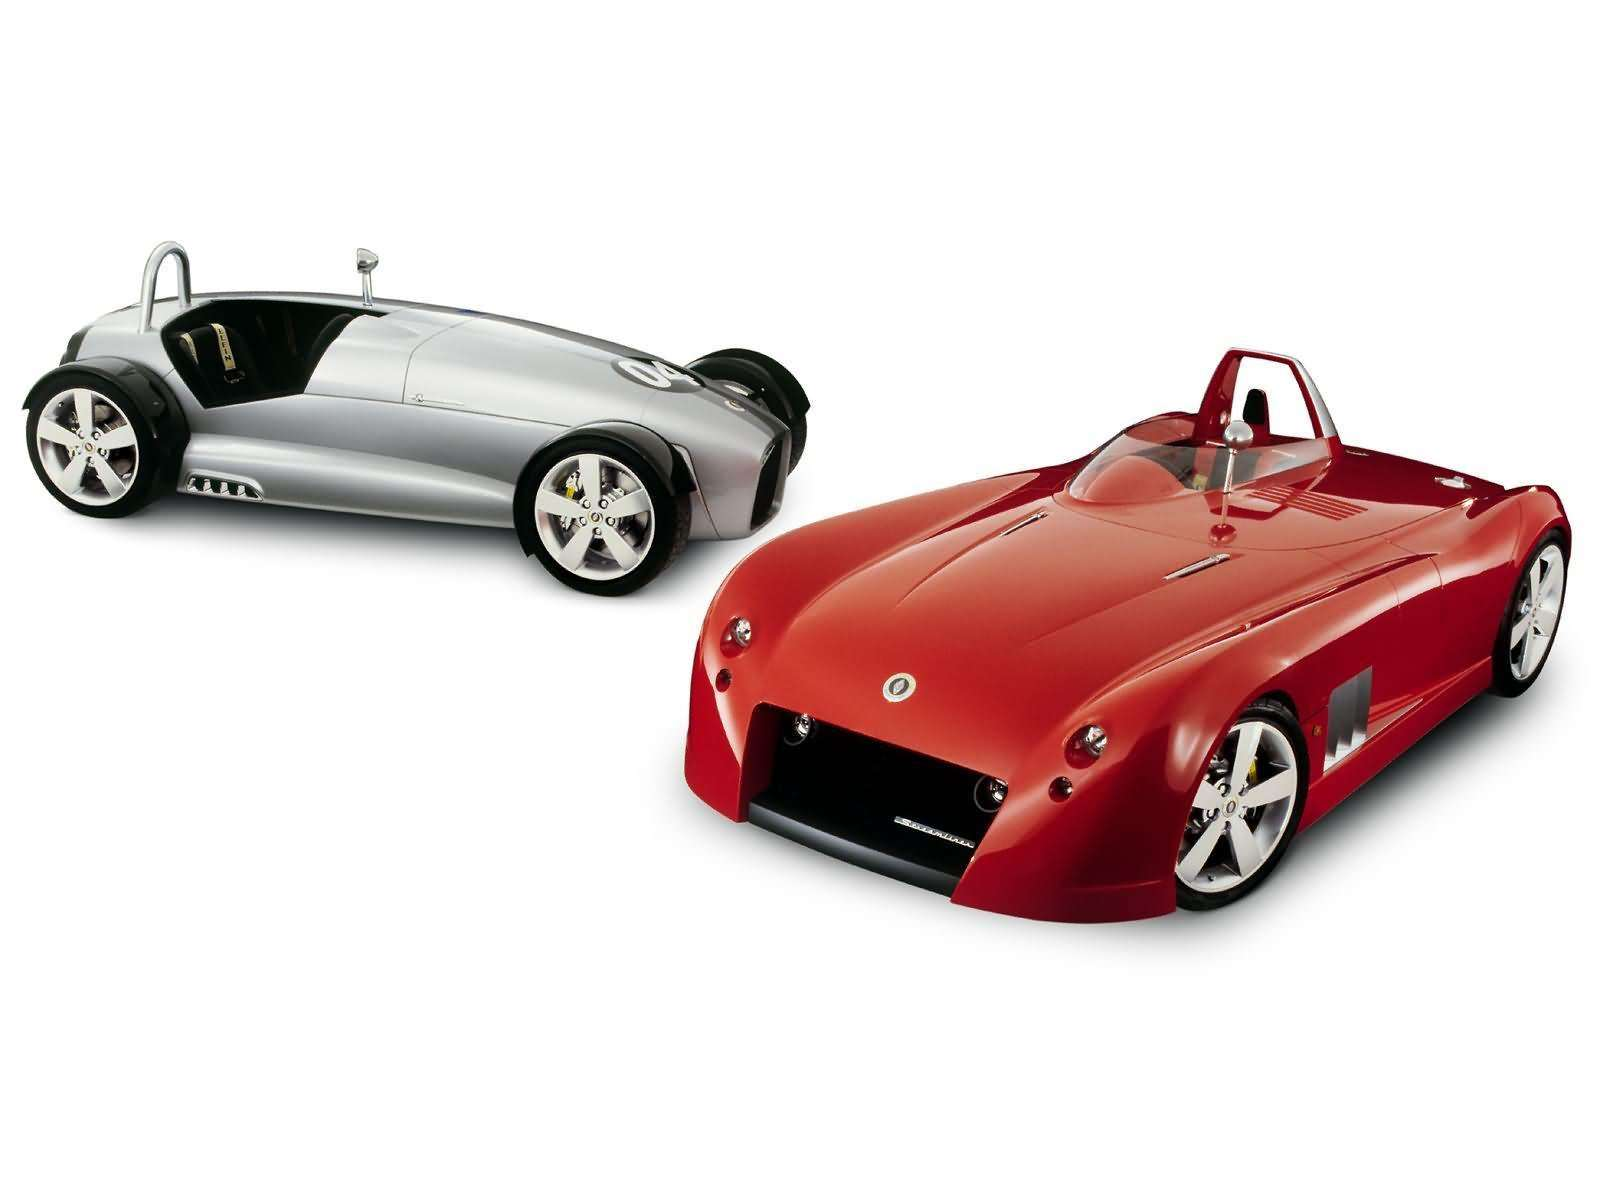 Sport Cars: Elfin Streamliner MS8 hd Wallpapers 2004